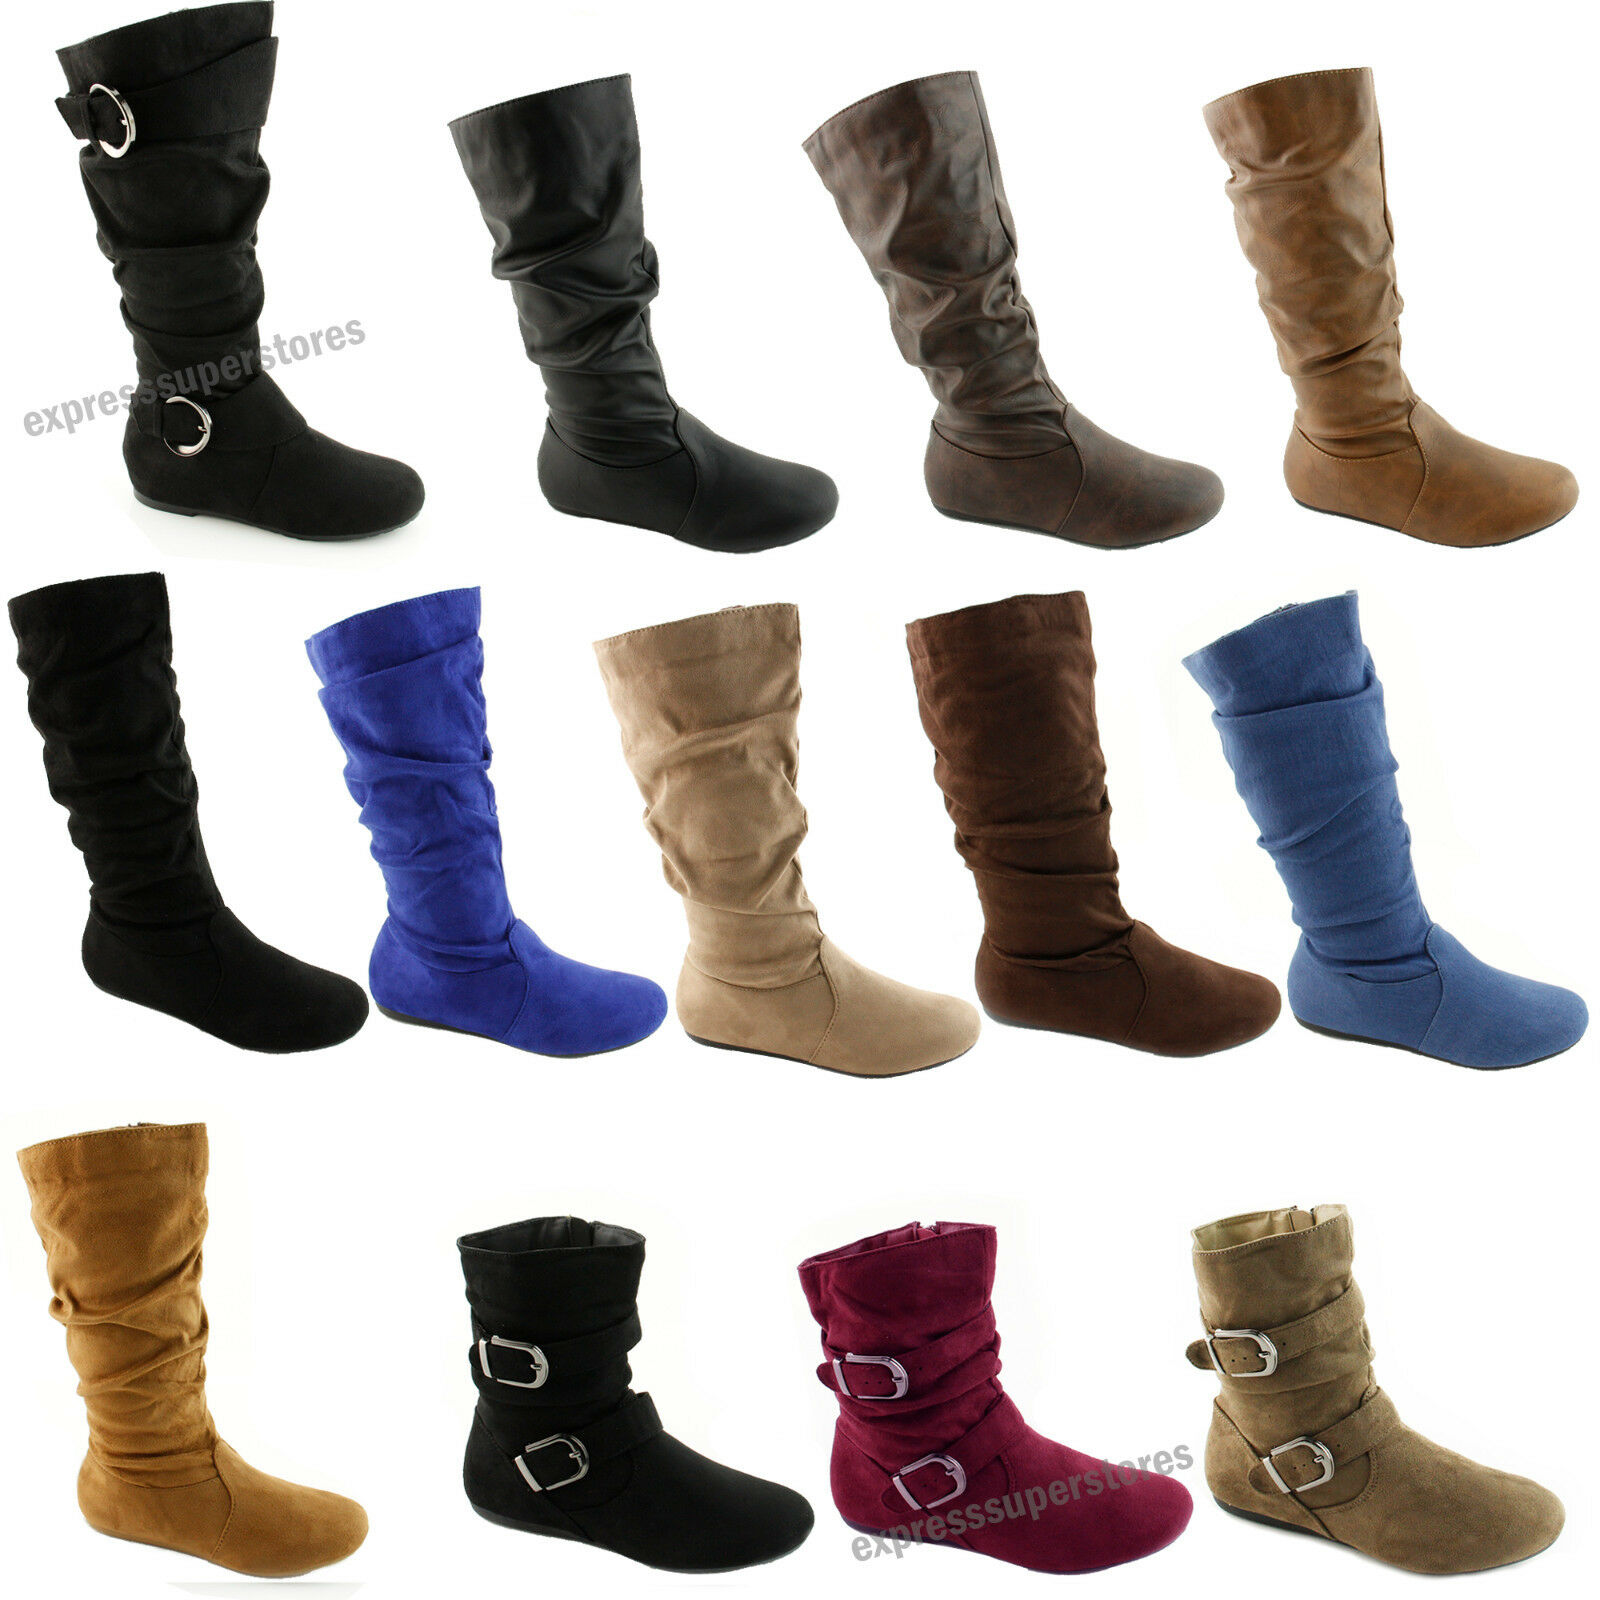 Boots - Women's Boots Slouch Below The Knee High New Faux Suede Flat Heels Booties Size